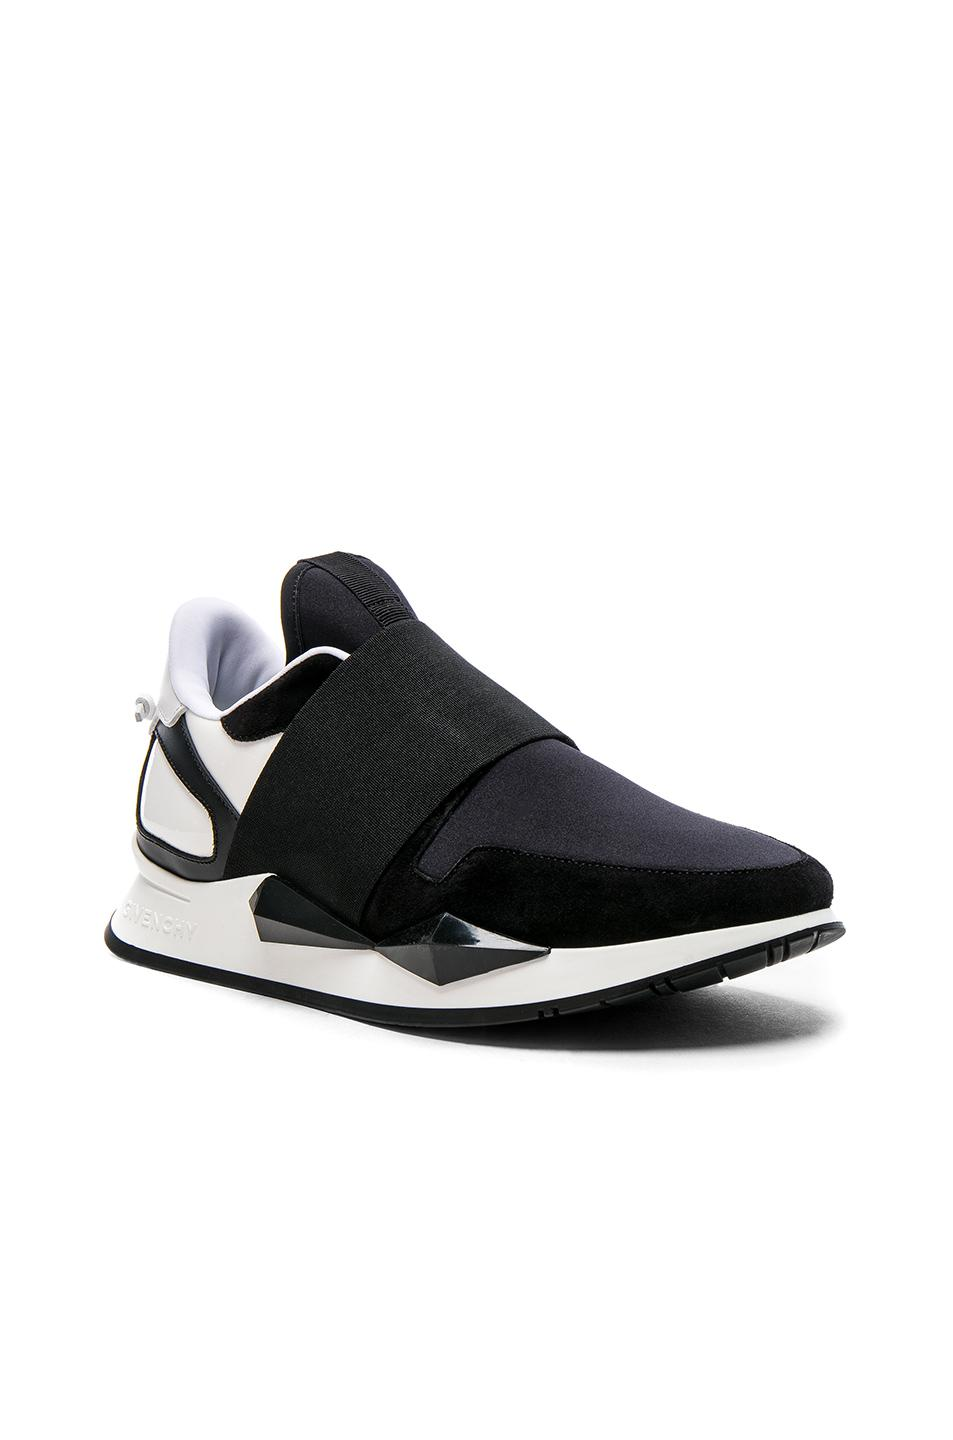 Givenchy Suede & Patent Leather Elastic Strap Sneakers in . mviA4kv